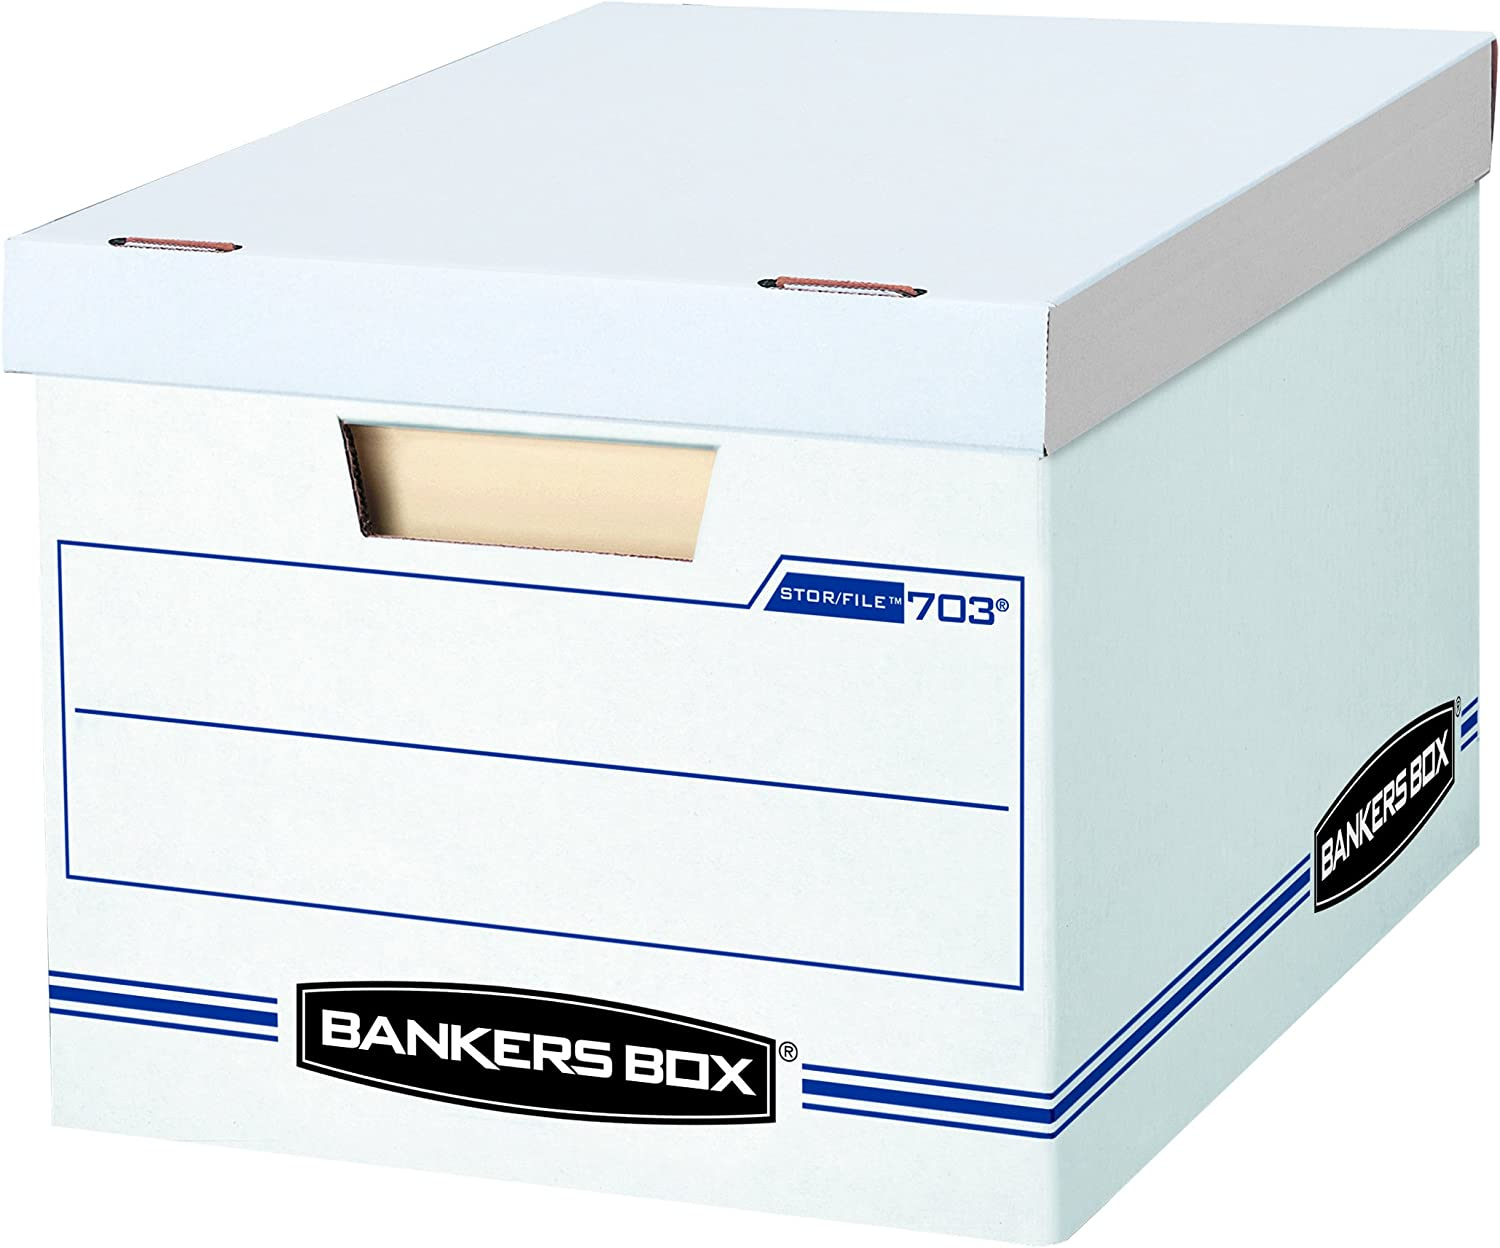 10 x 12 x 15 Letter//Legal Bankers Box Stor//File Decorative Storage Boxes